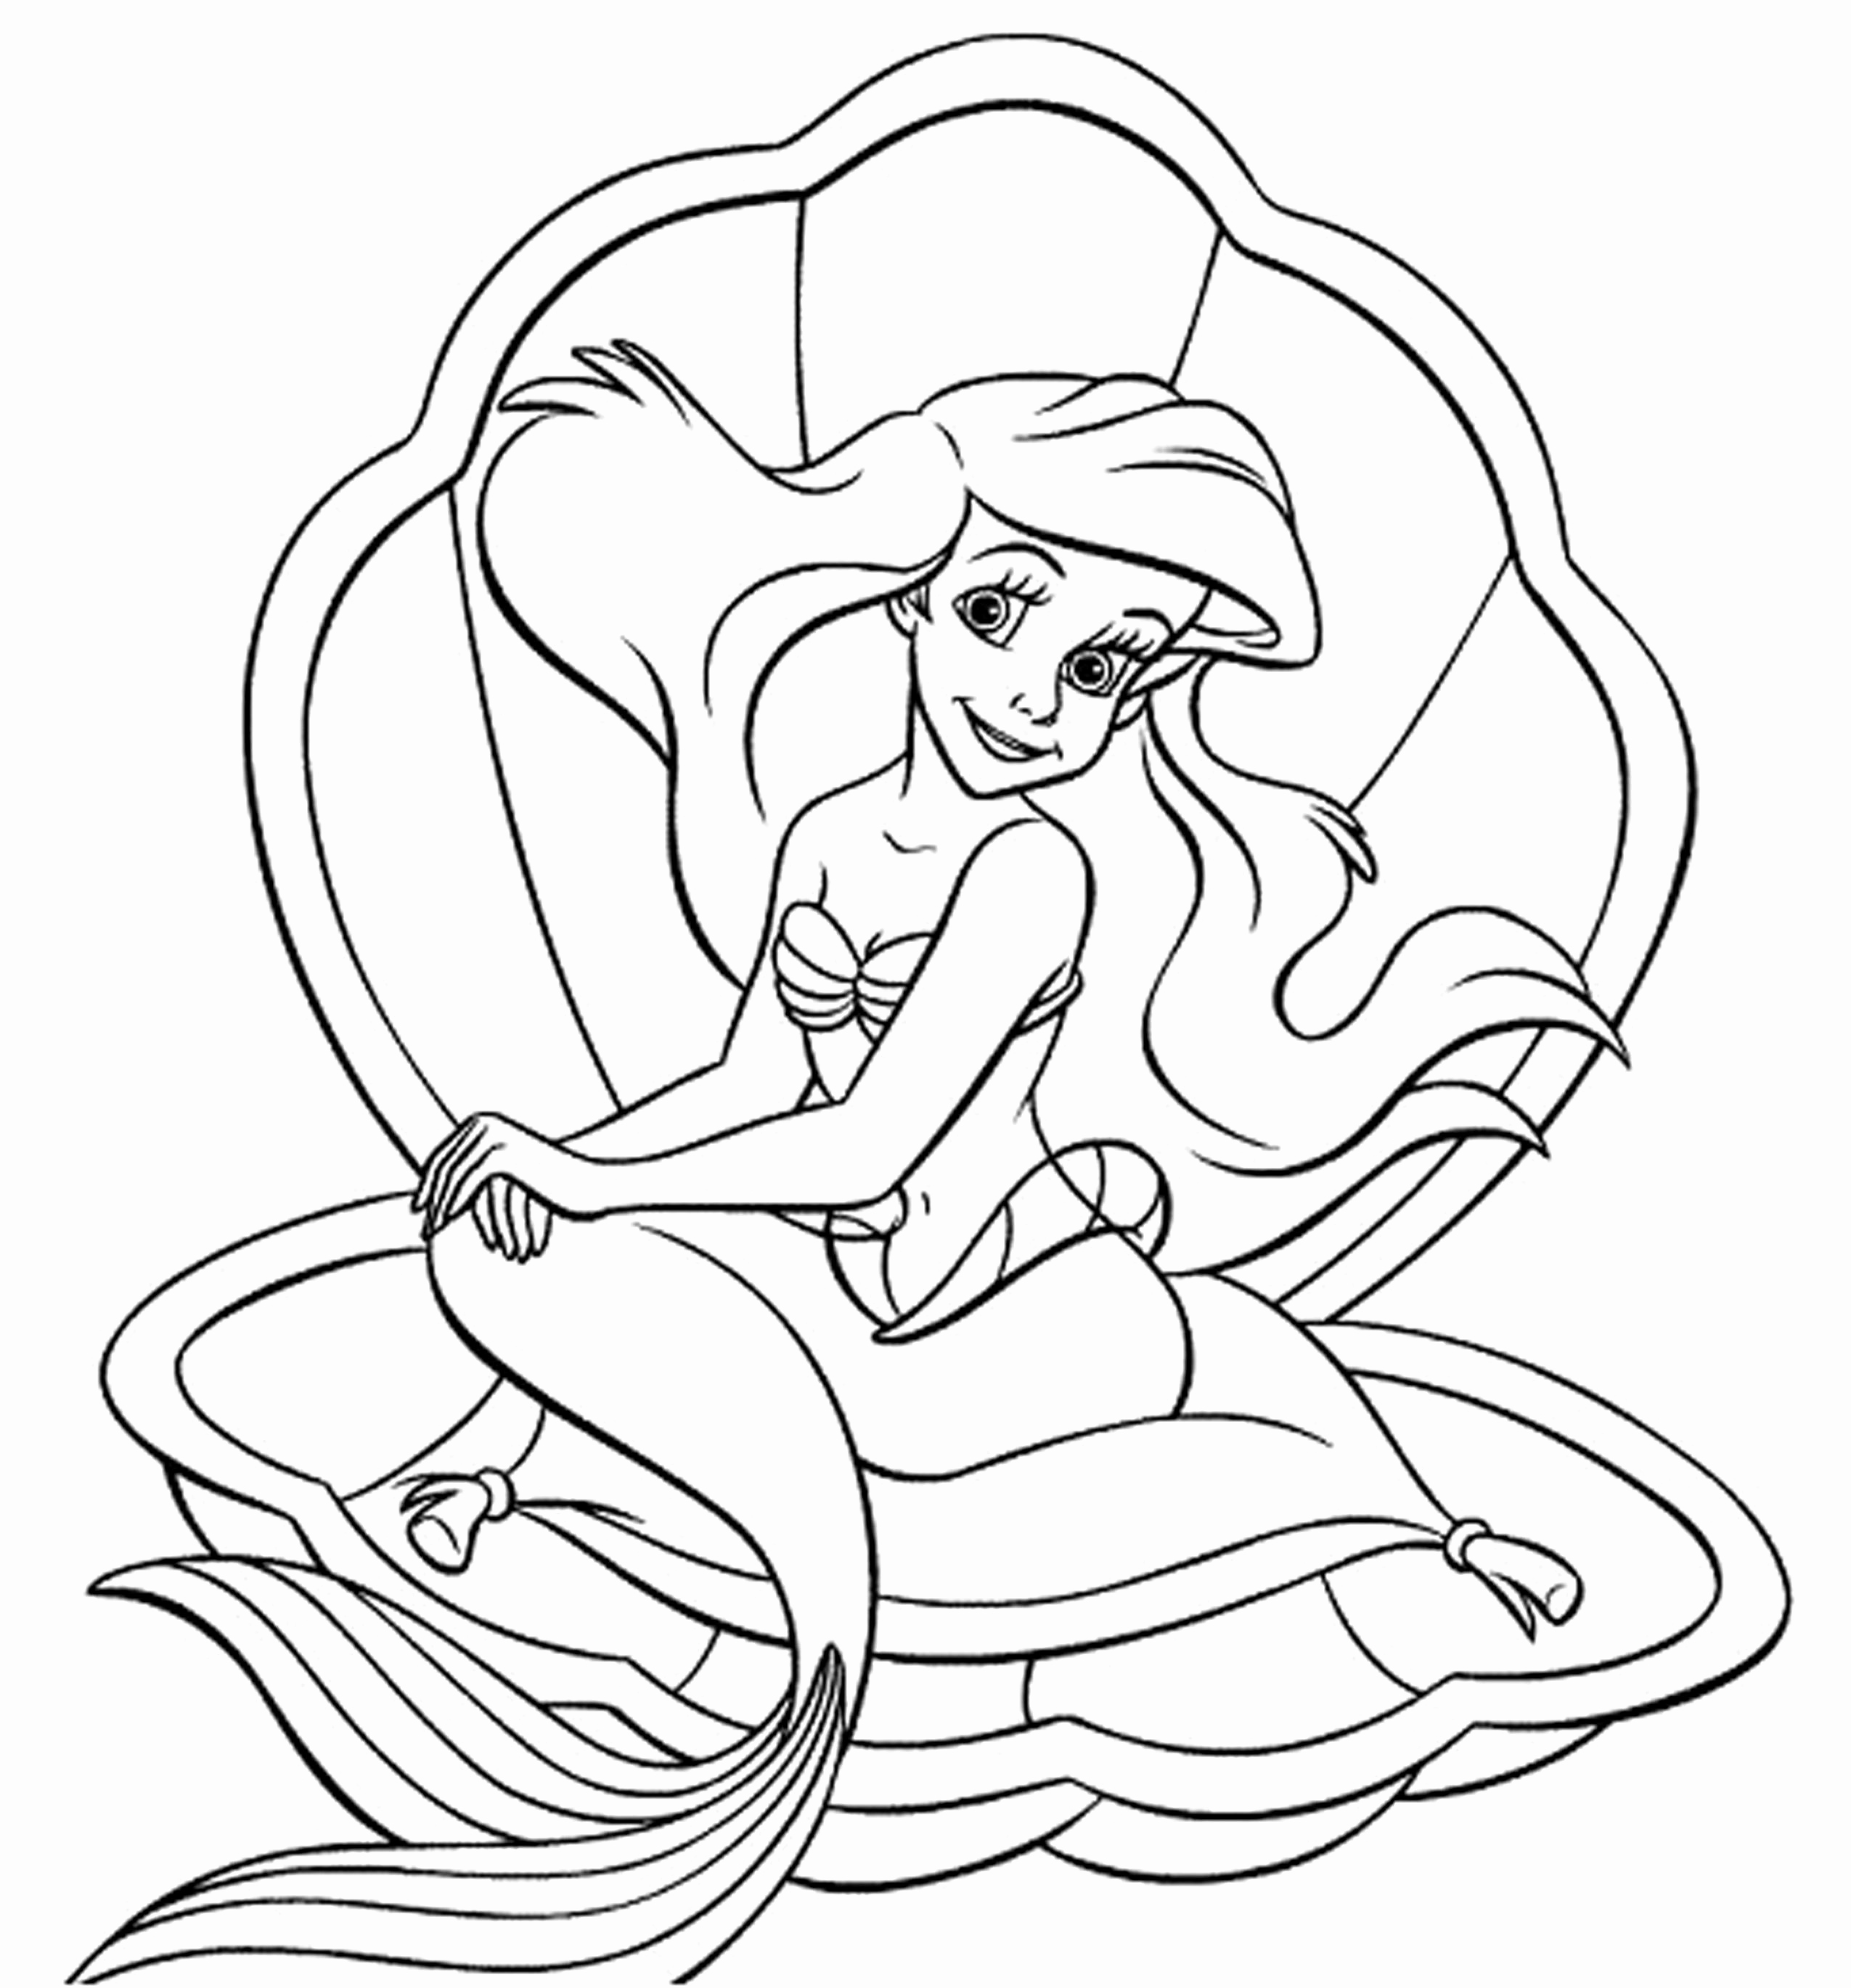 mermaid coloring pages online ariel the little mermaid coloring pages at getdrawings mermaid pages online coloring